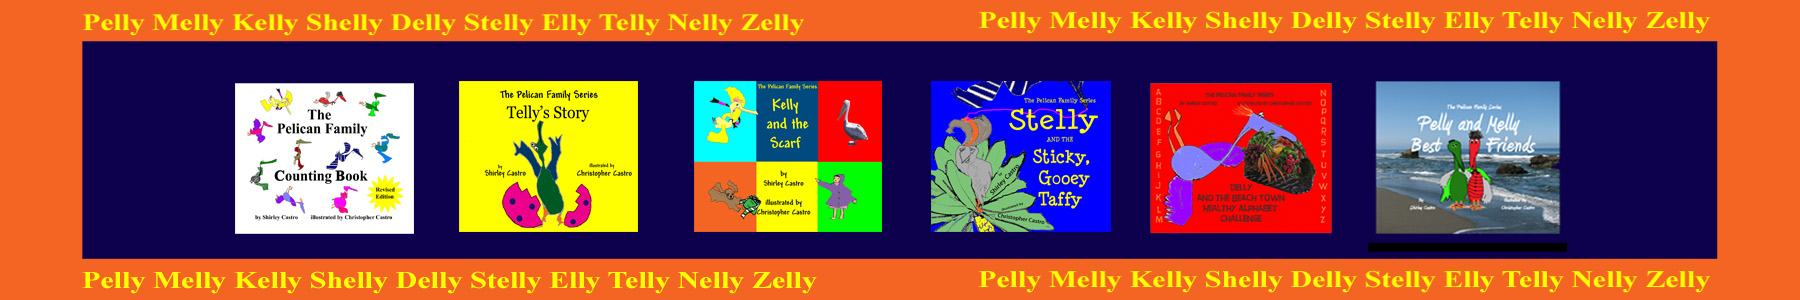 Pelican Family Series Childrens Picture Books